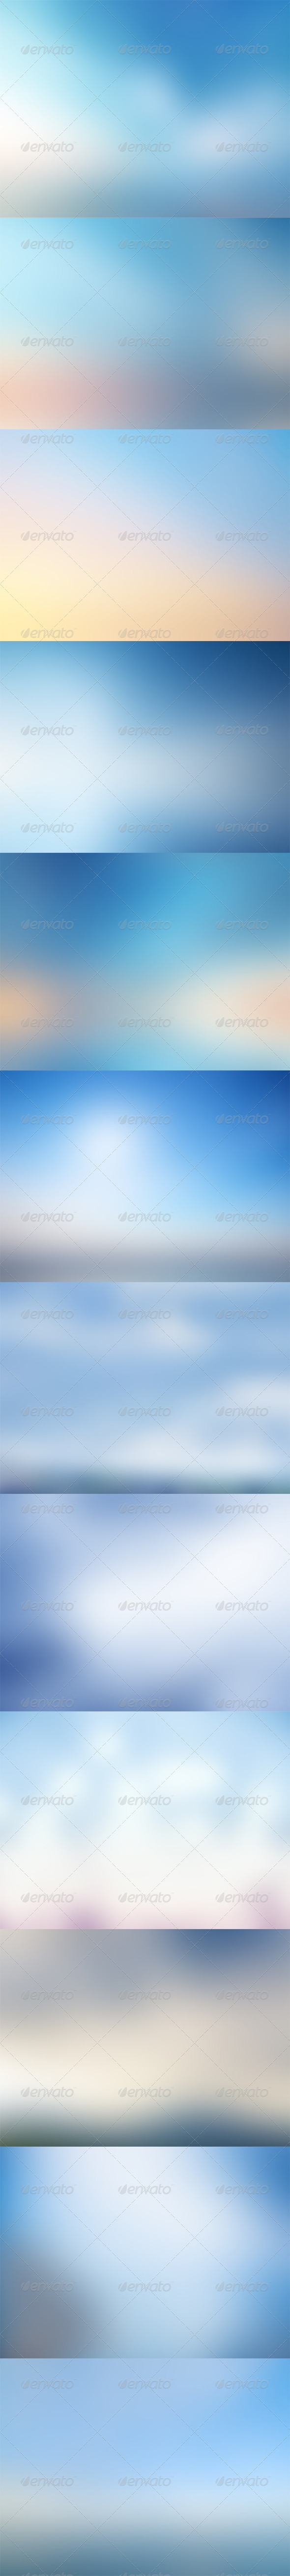 GraphicRiver Light Blue Backgrounds 5740197